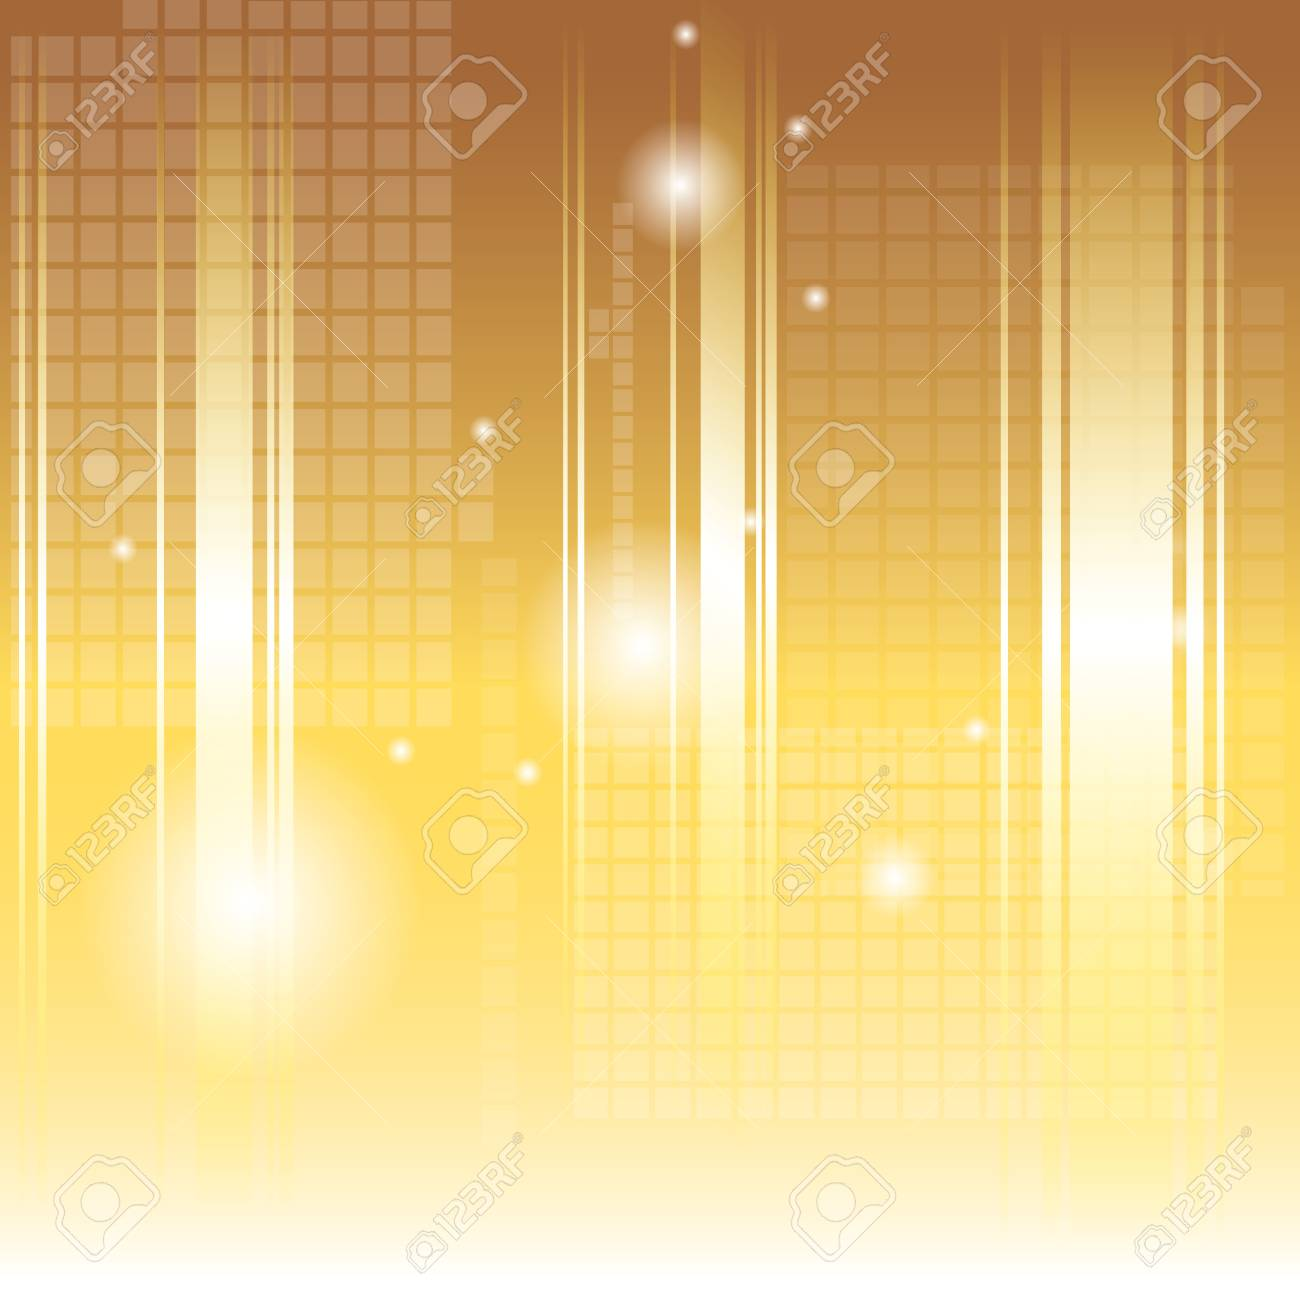 vector illustration of abstract gold background Stock Vector - 21912325